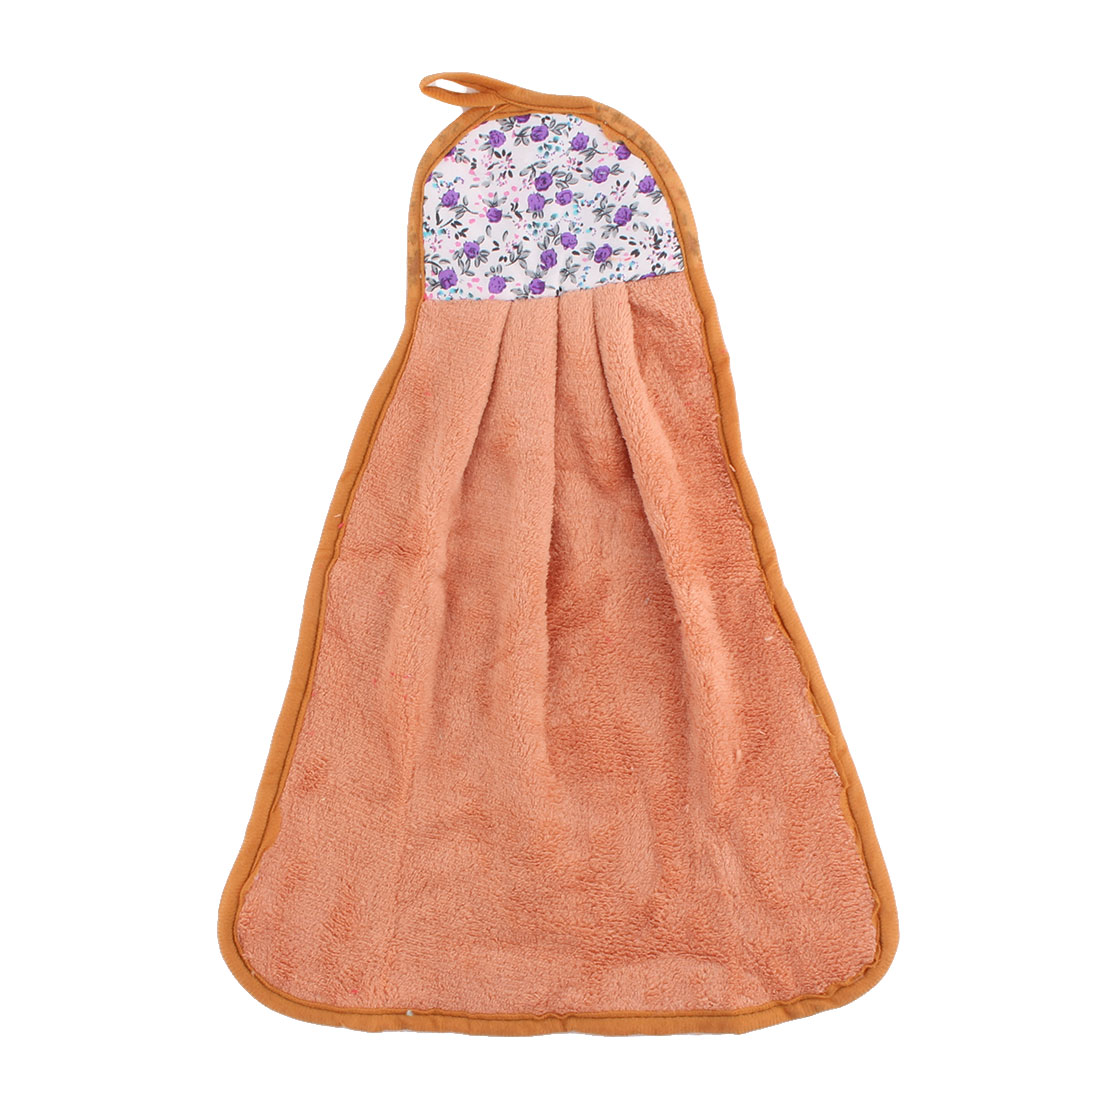 Home Kitchen Coral Velvet Floral Pattern Wall Hanging Hand Drying Towel Brown